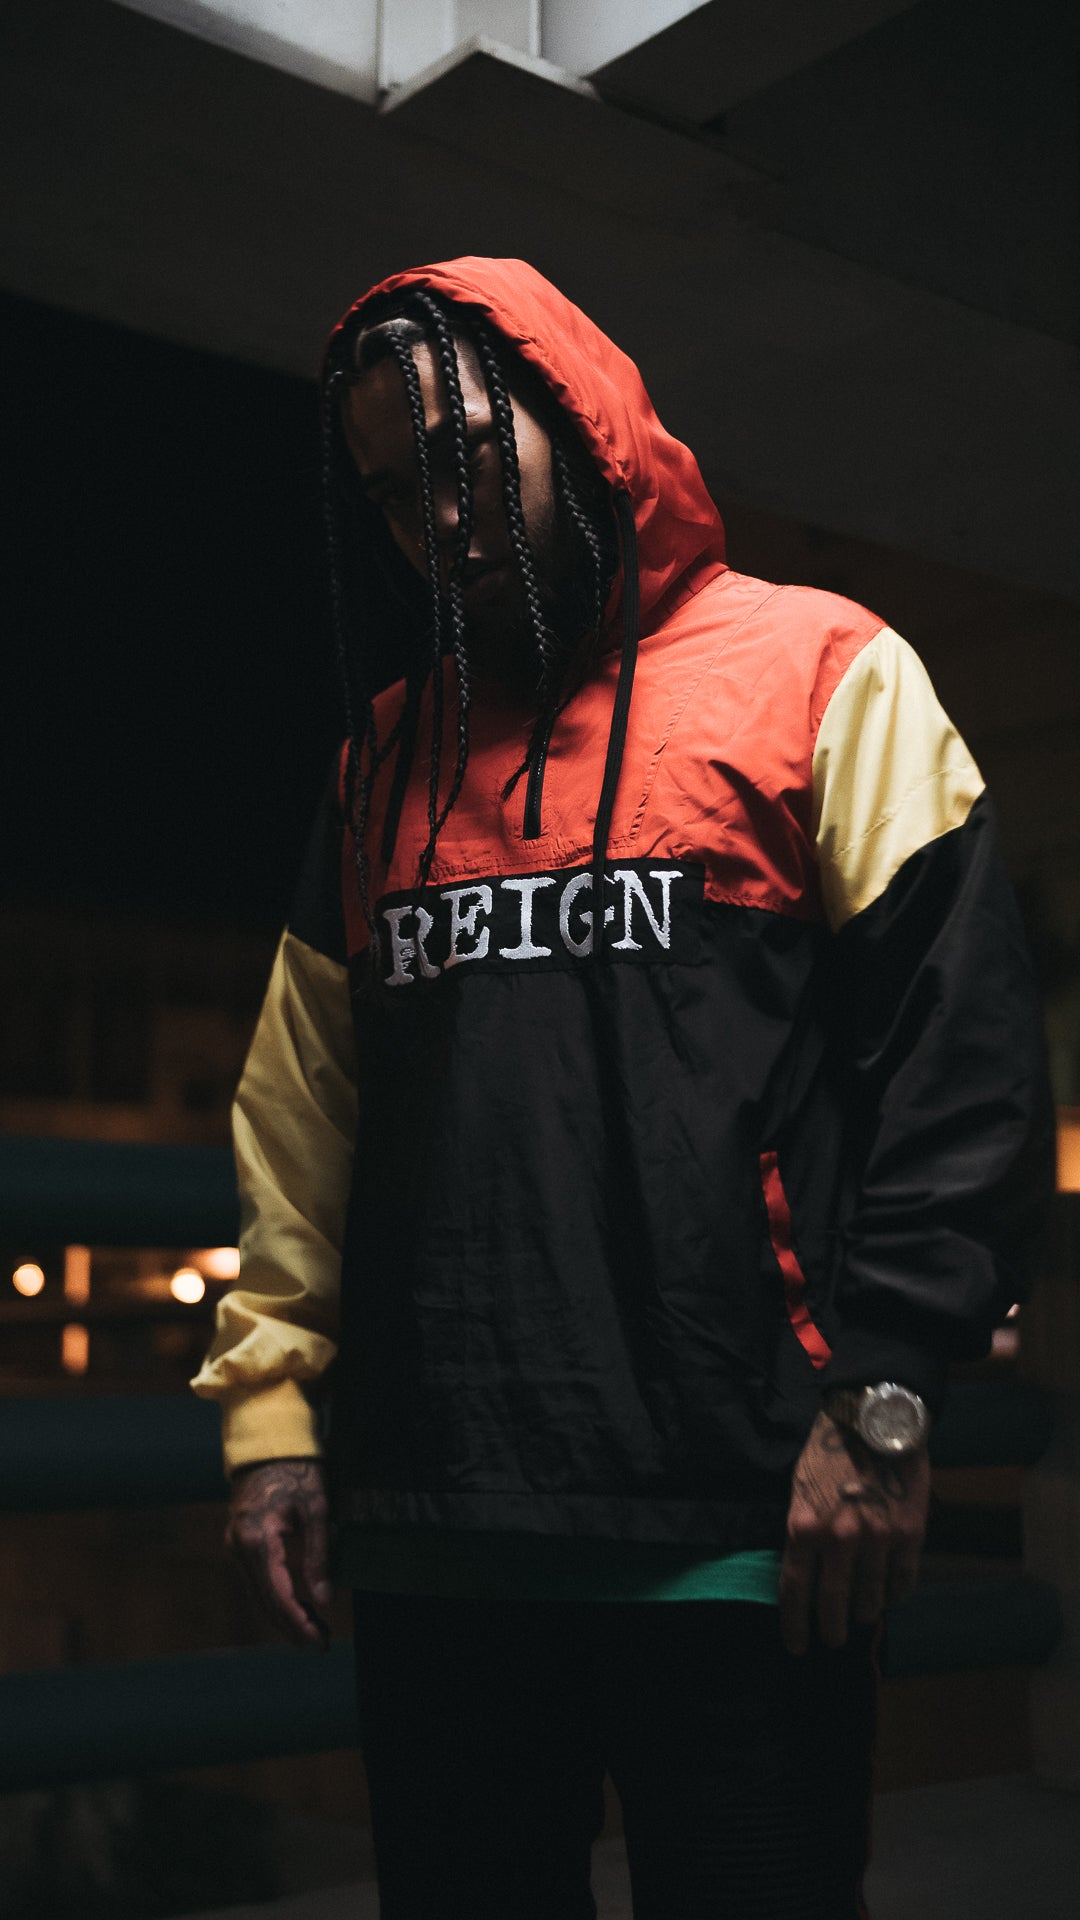 REIGN Windbreaker Jacket ( Small and XXL left)